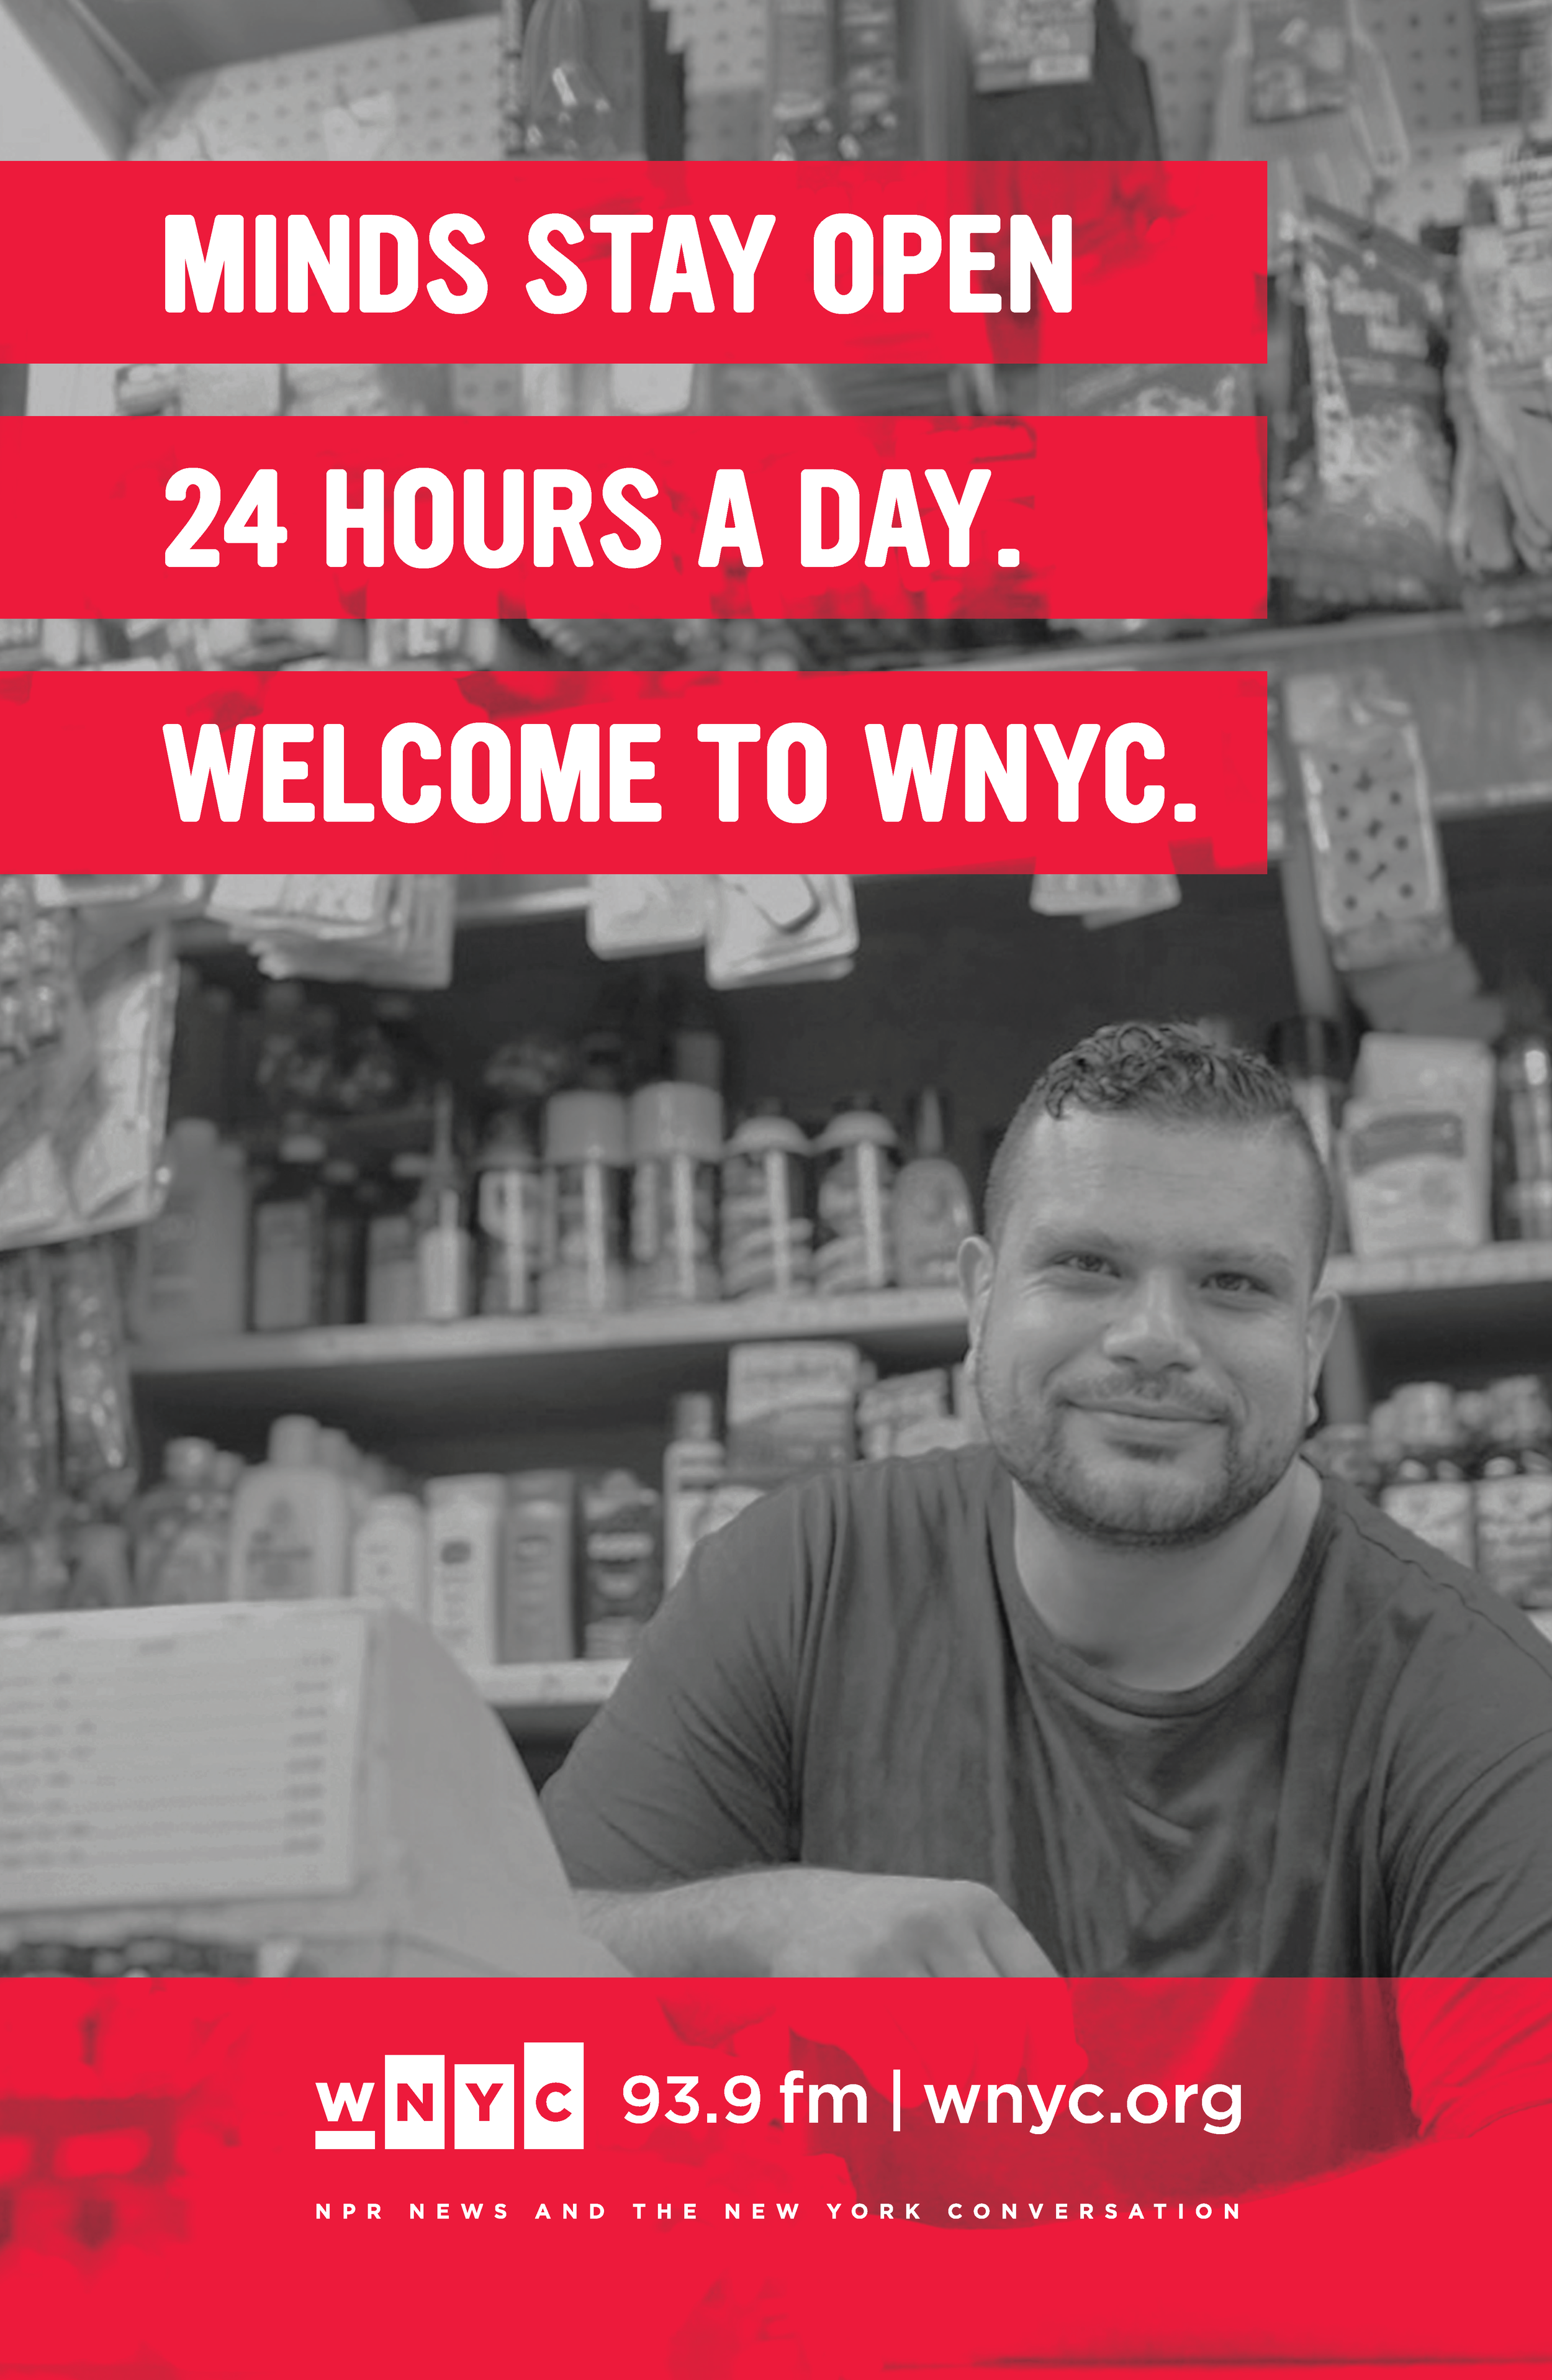 WNYC0524HOURS_V1a_NYR_1S_46x30.png